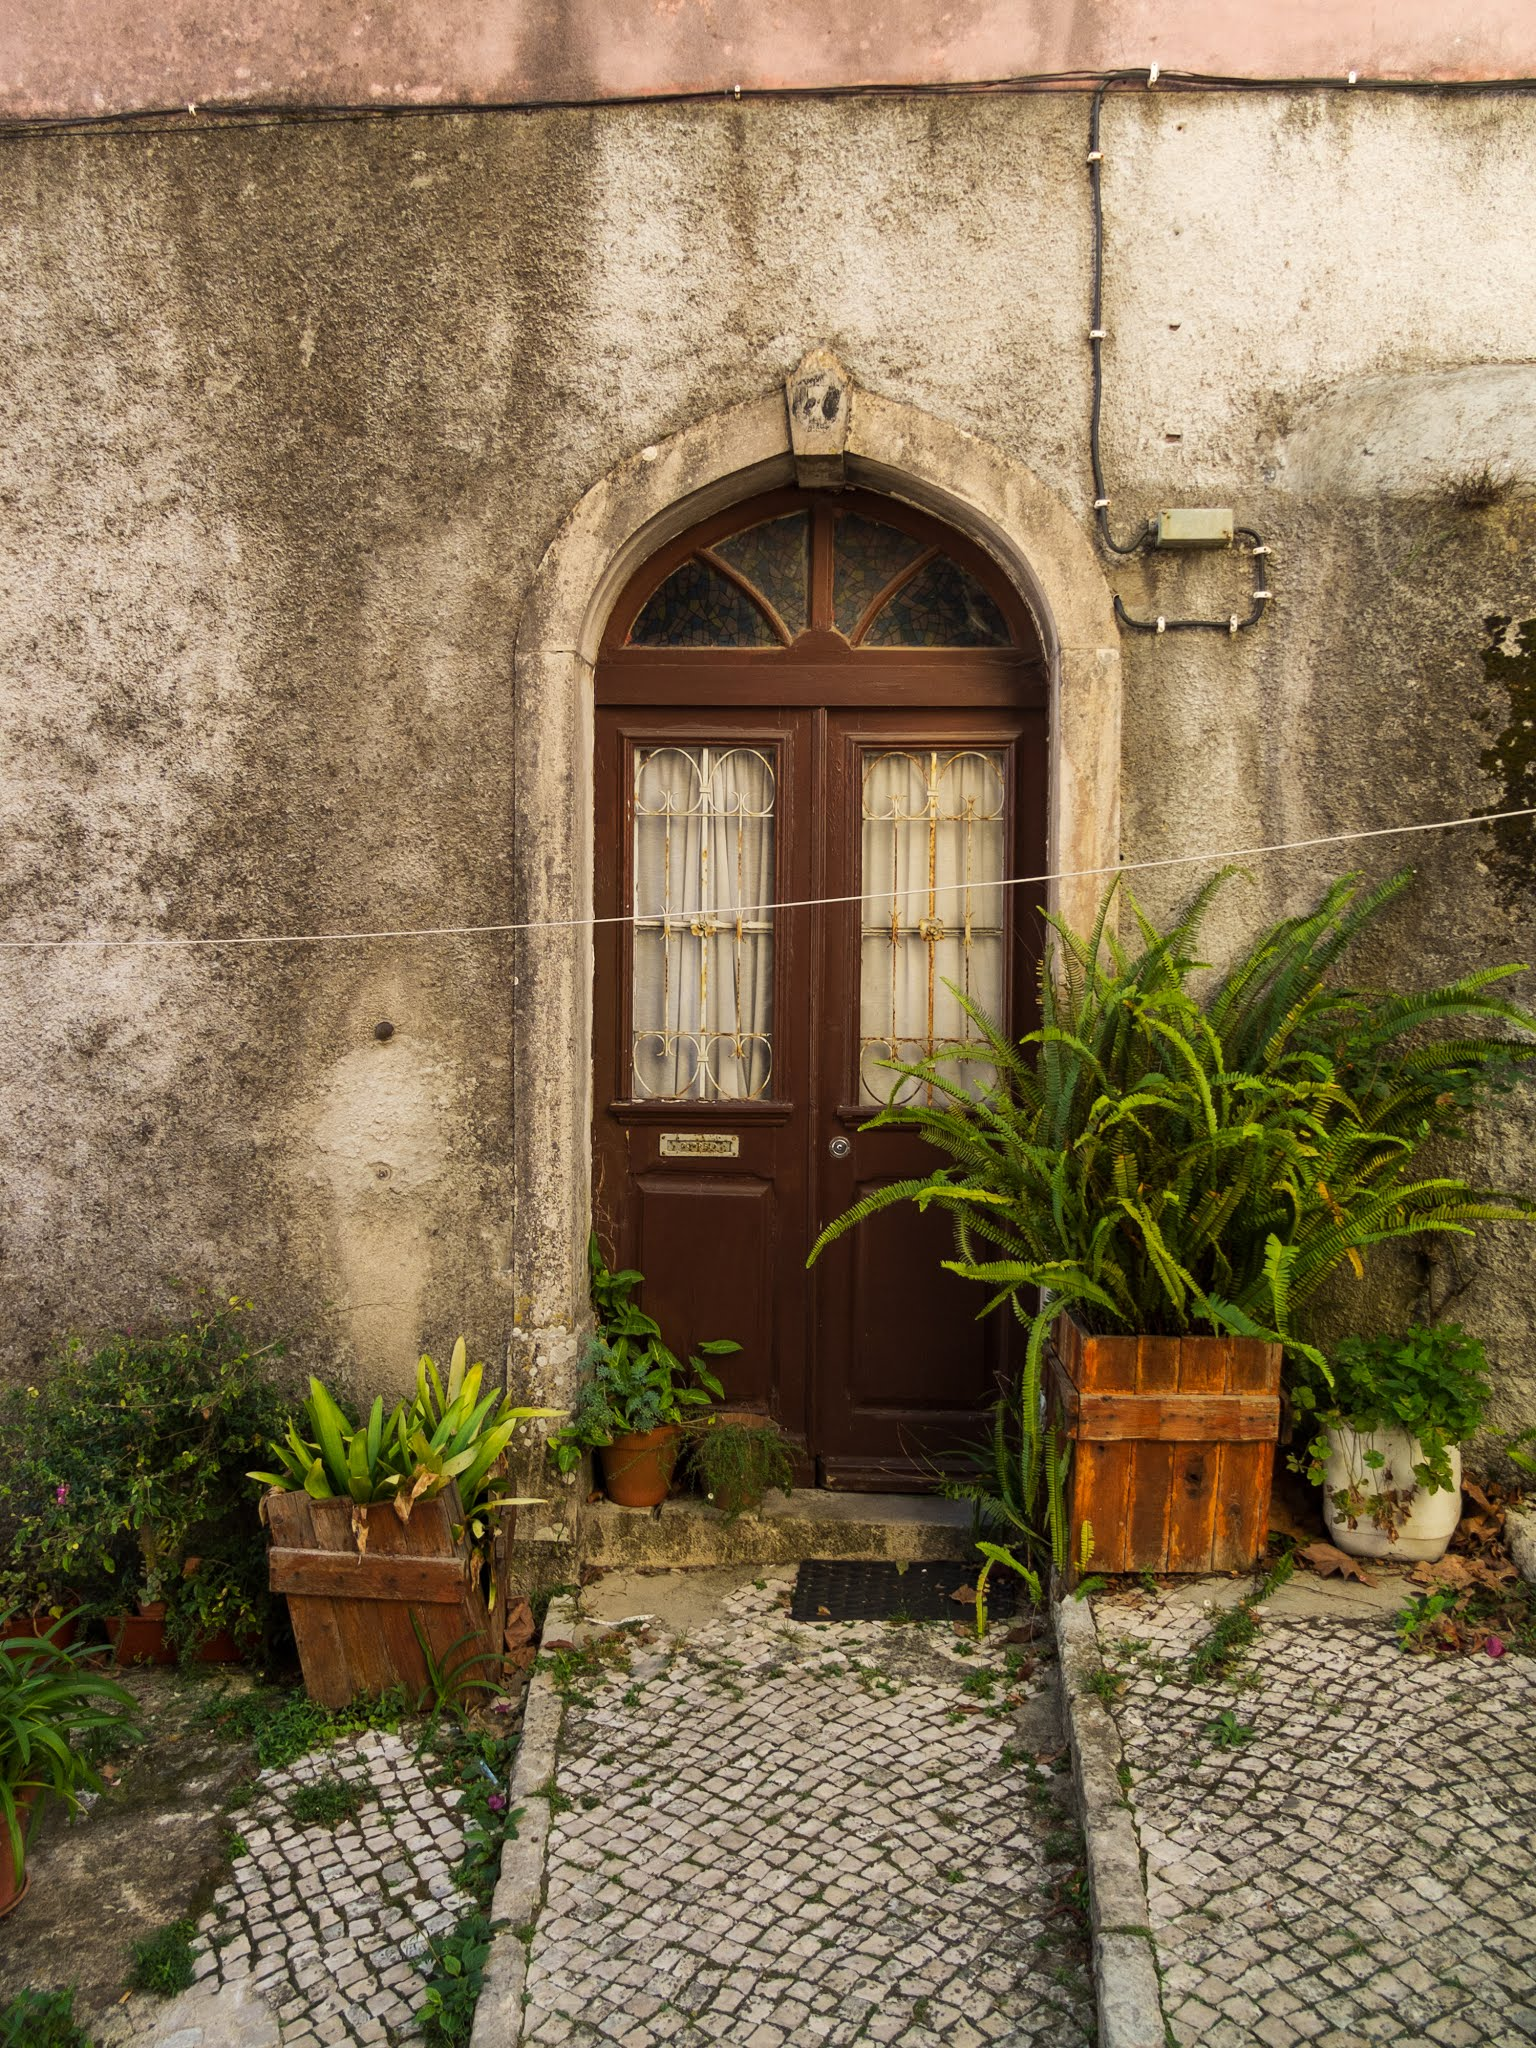 A brown doorway with plant pots on the hillside in Sintra, Portugal.